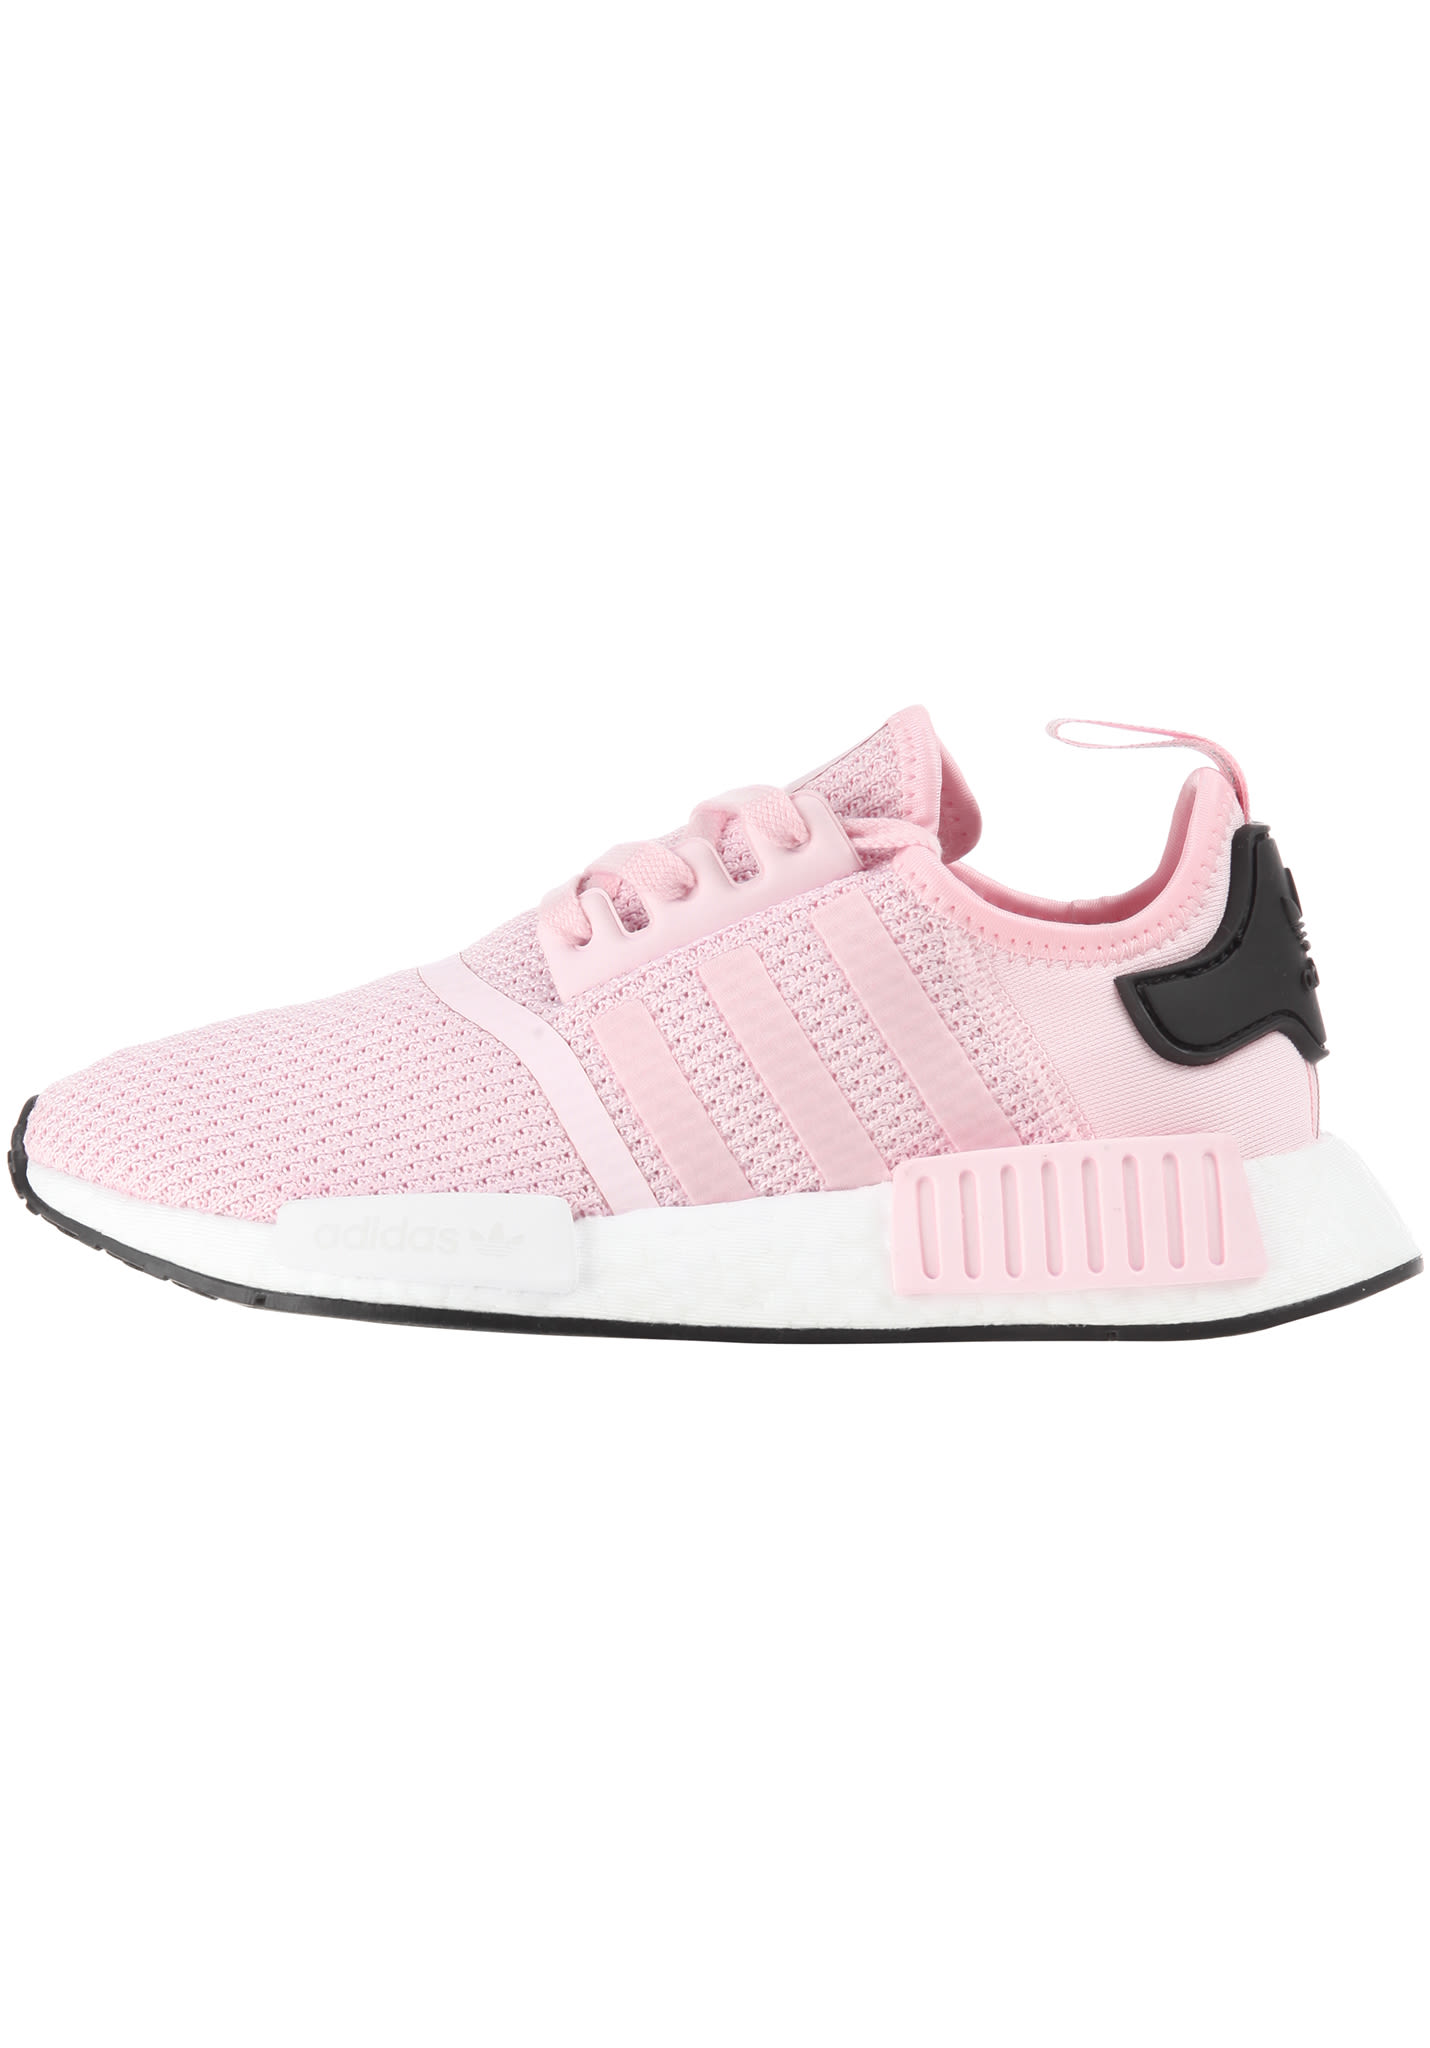 5945d7c407c6 ADIDAS ORIGINALS NMD R1 - Sneakers for Women - Pink - Planet Sports